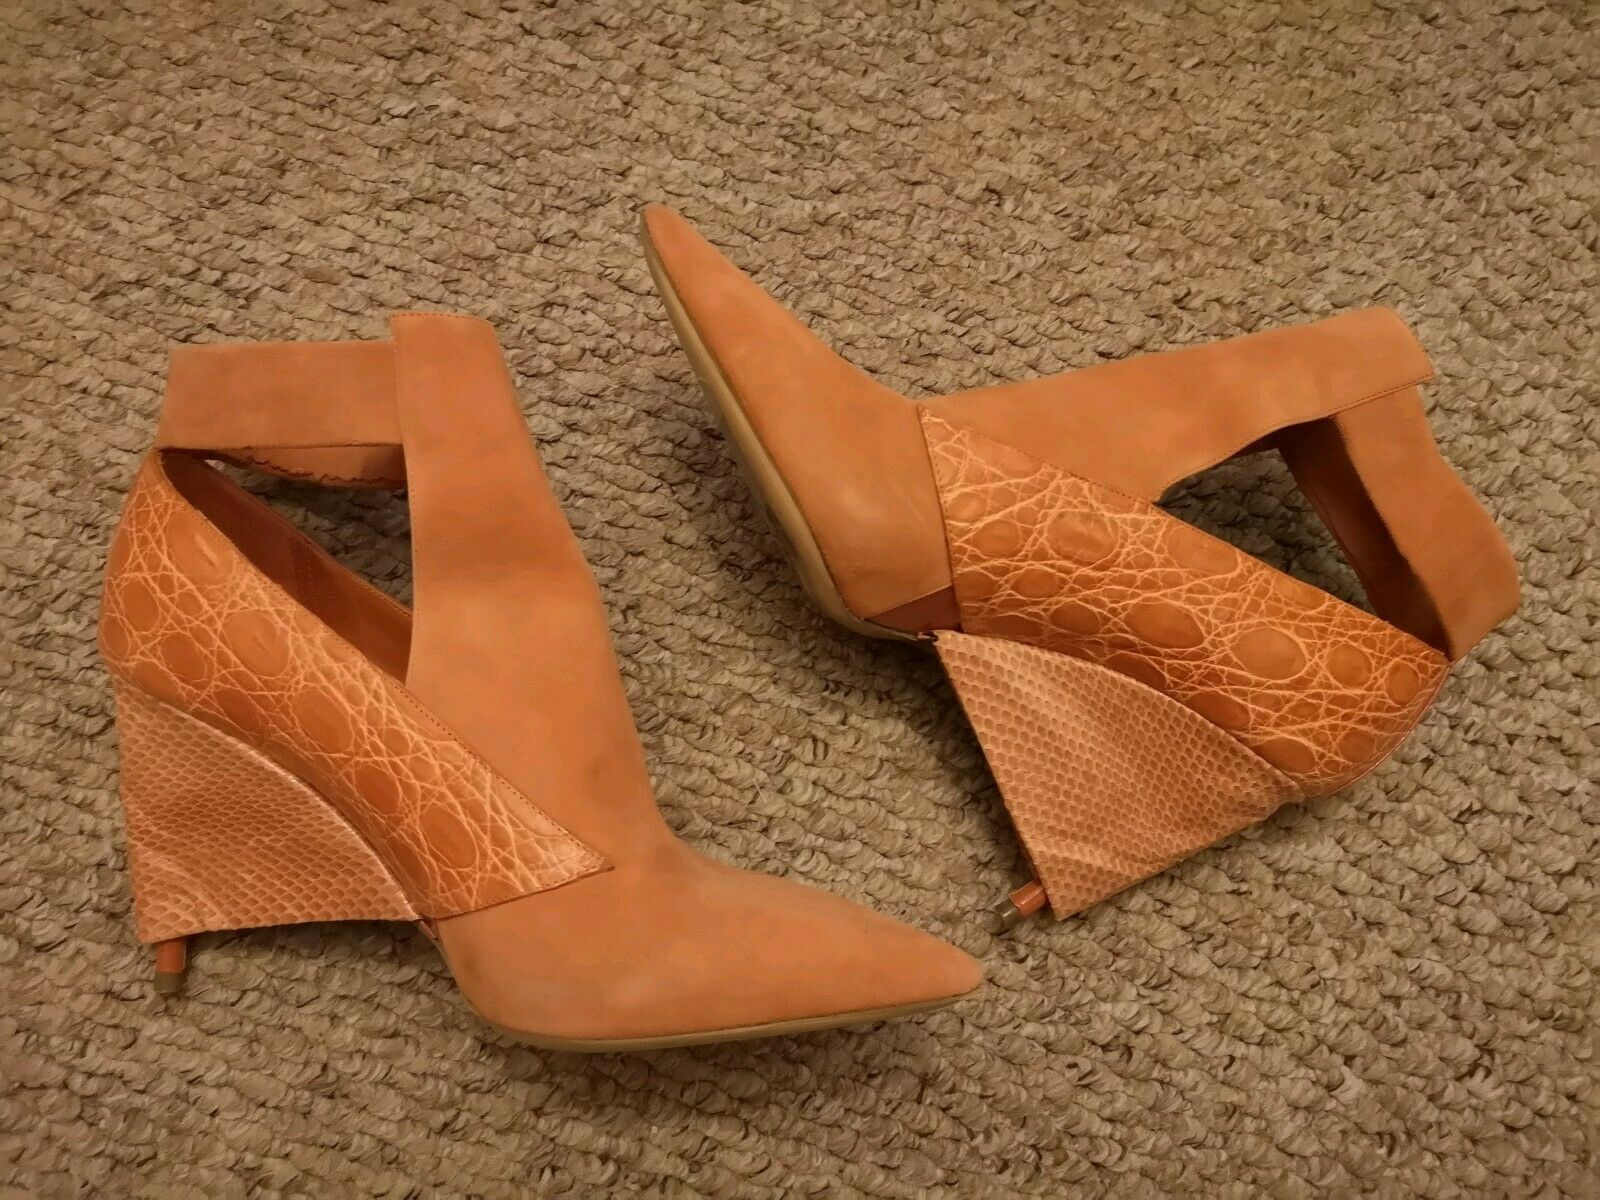 Sample Rare de Collection Chloe bottes 37 UK UK UK 4 Orange rouille en daim utilisé une fois 5e06a6